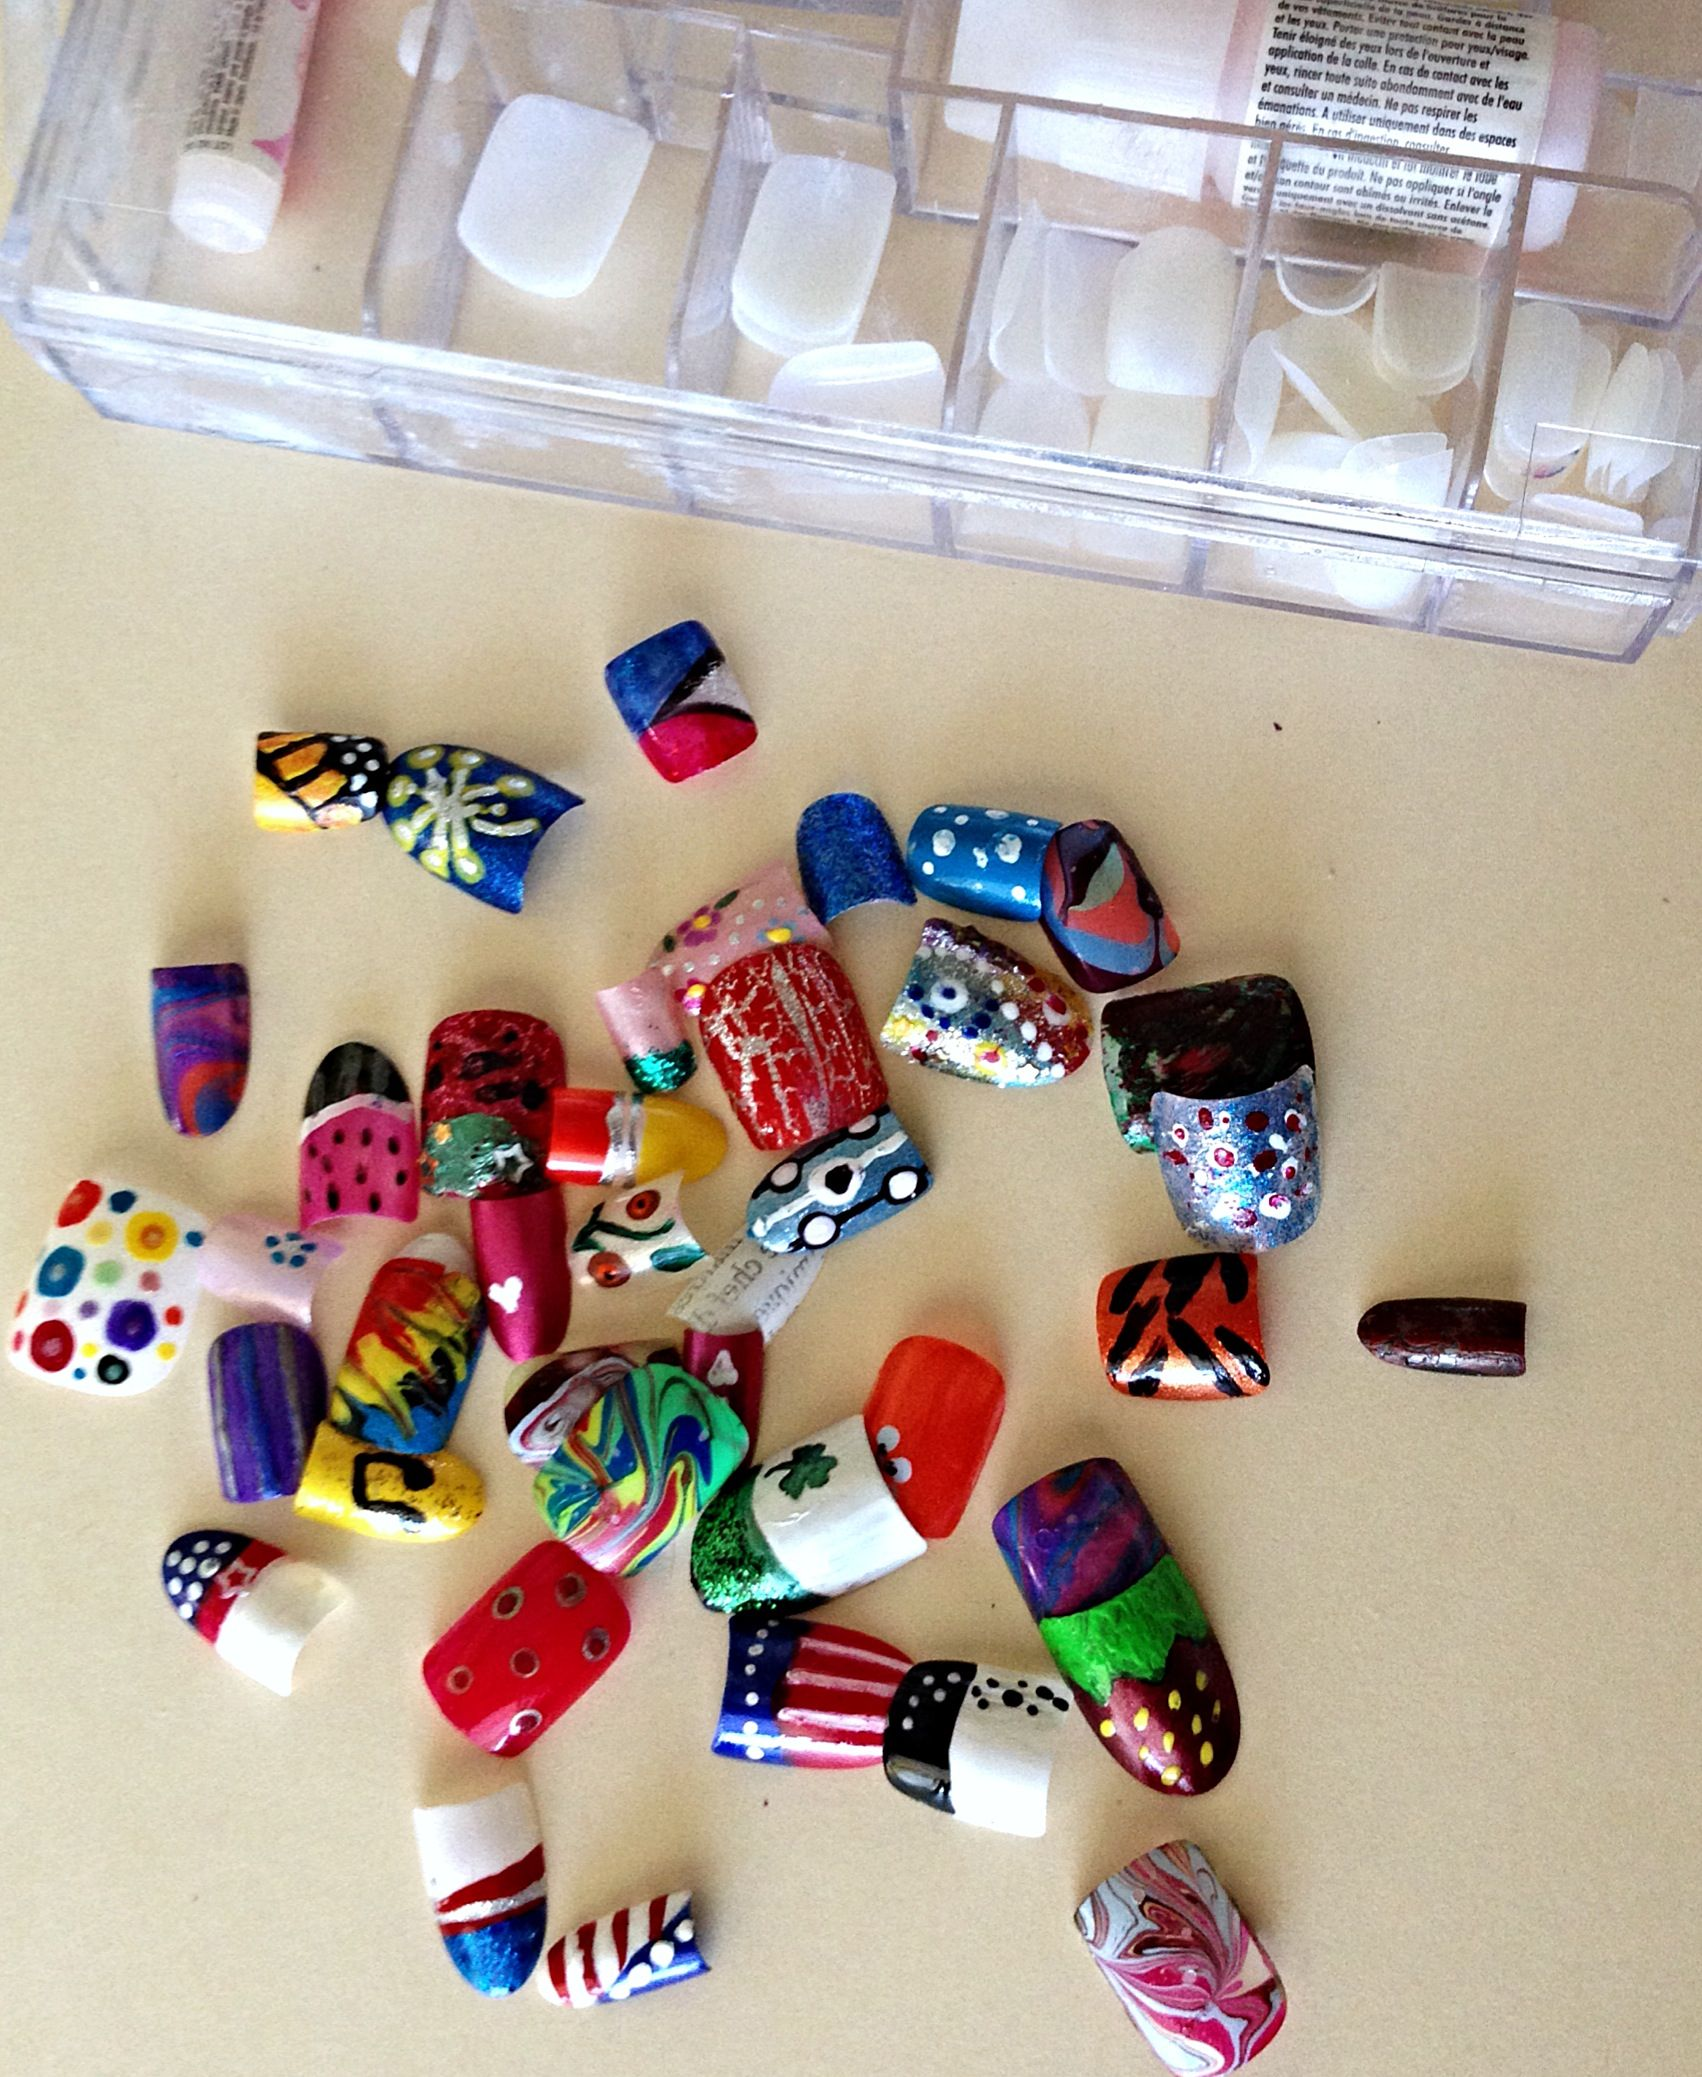 Use Press On Nails To Practice Nail Art Designs Attach